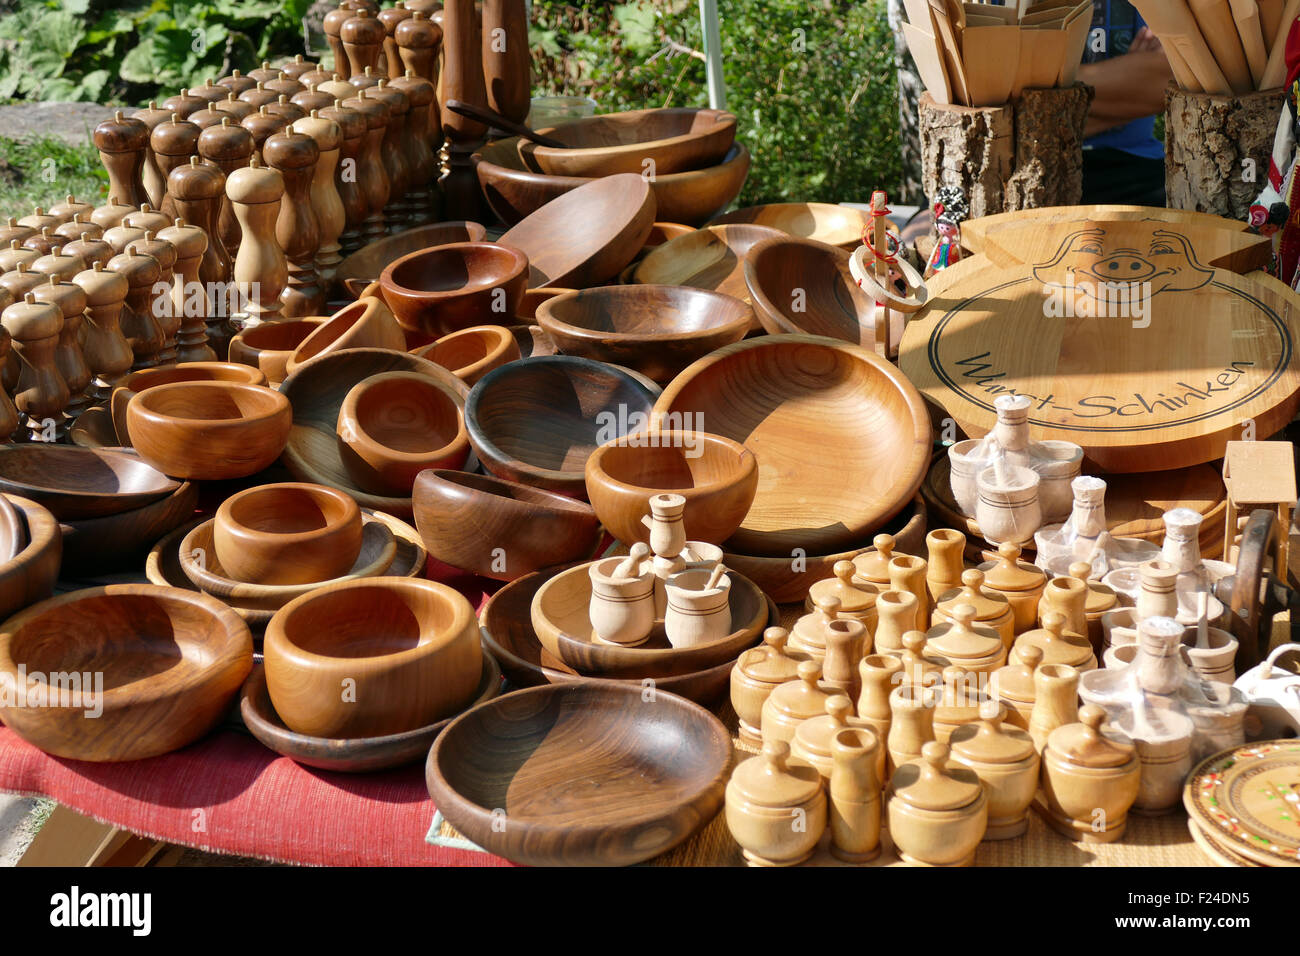 Stall with handmade pottery at the Etar, Bulgaria - Stock Image